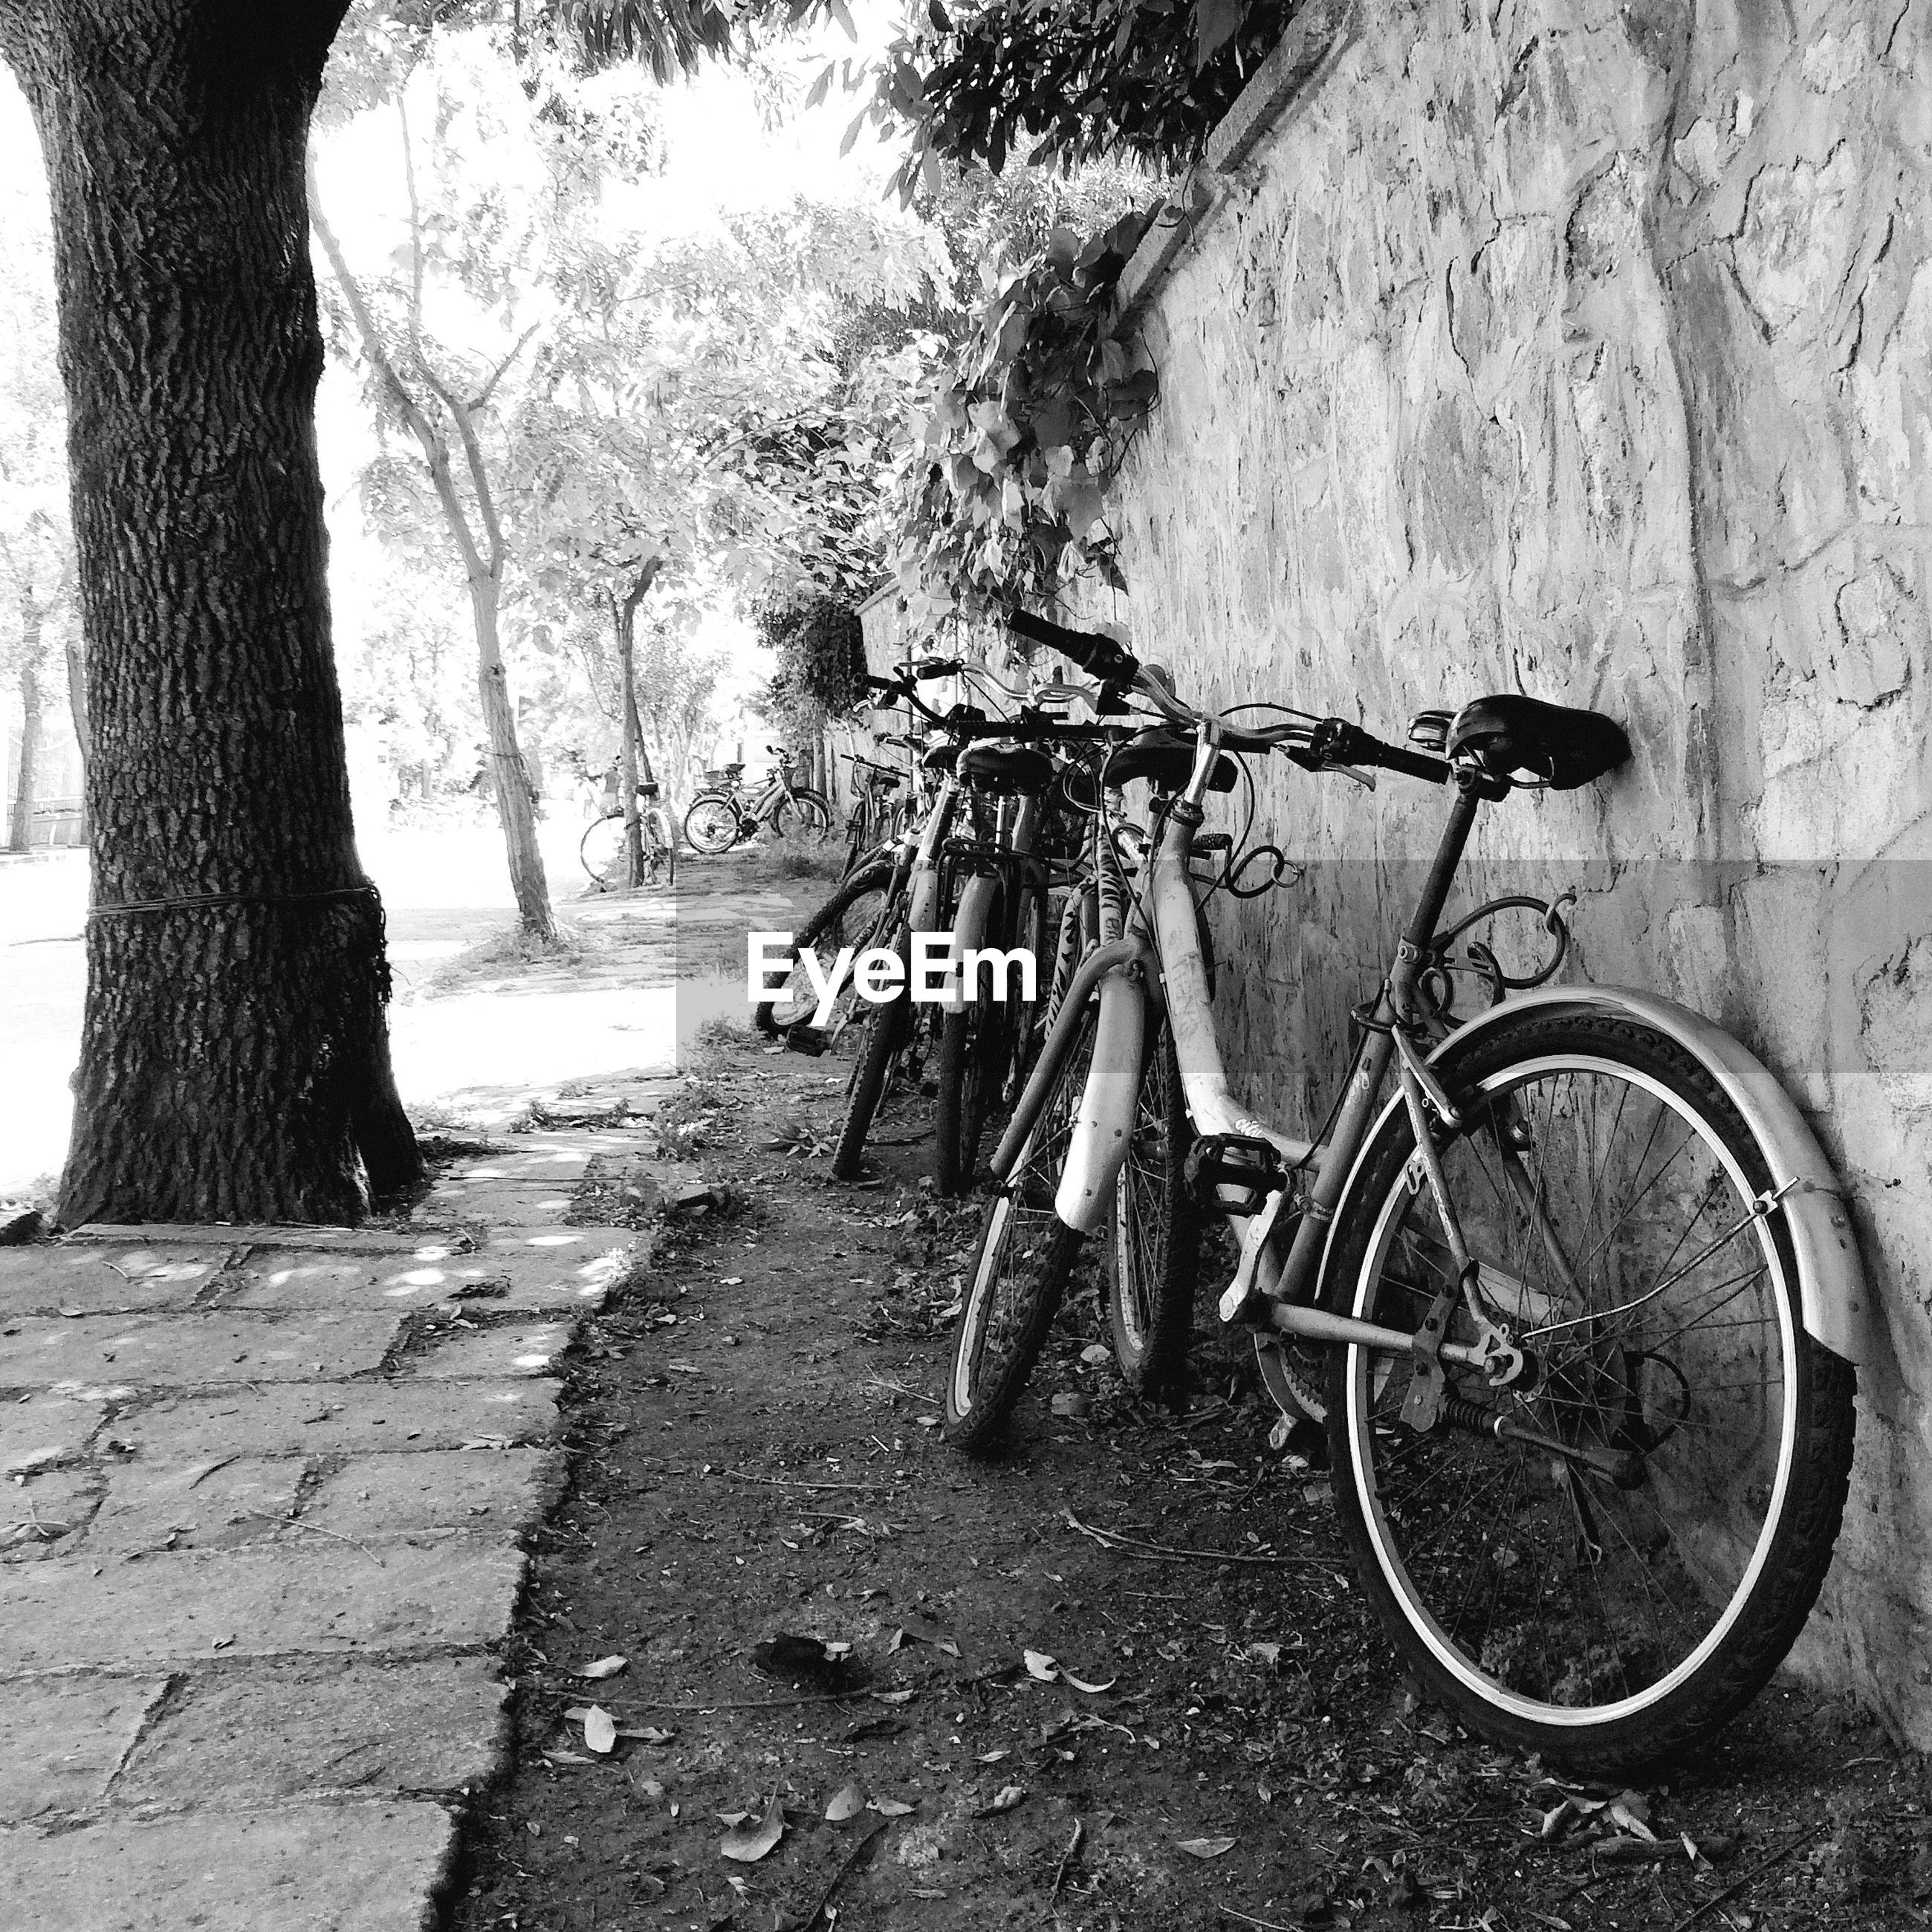 Bicycles parked on footpath by wall